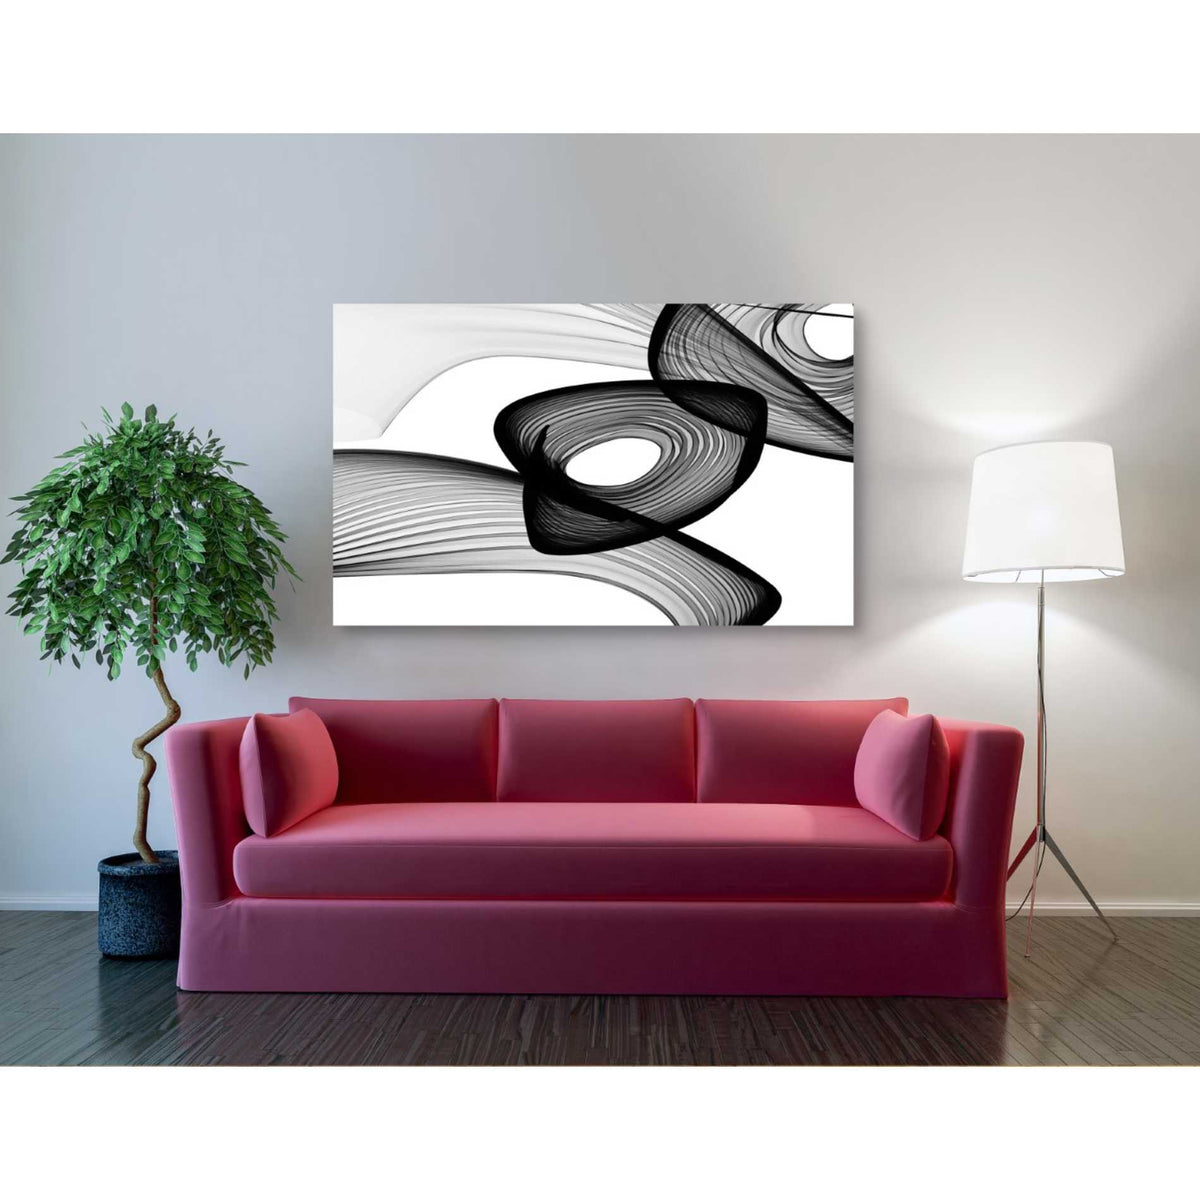 Epic Graffiti 'Abstract Black and White 22-16' by Irena Orlov, Giclee Canvas Wall Art